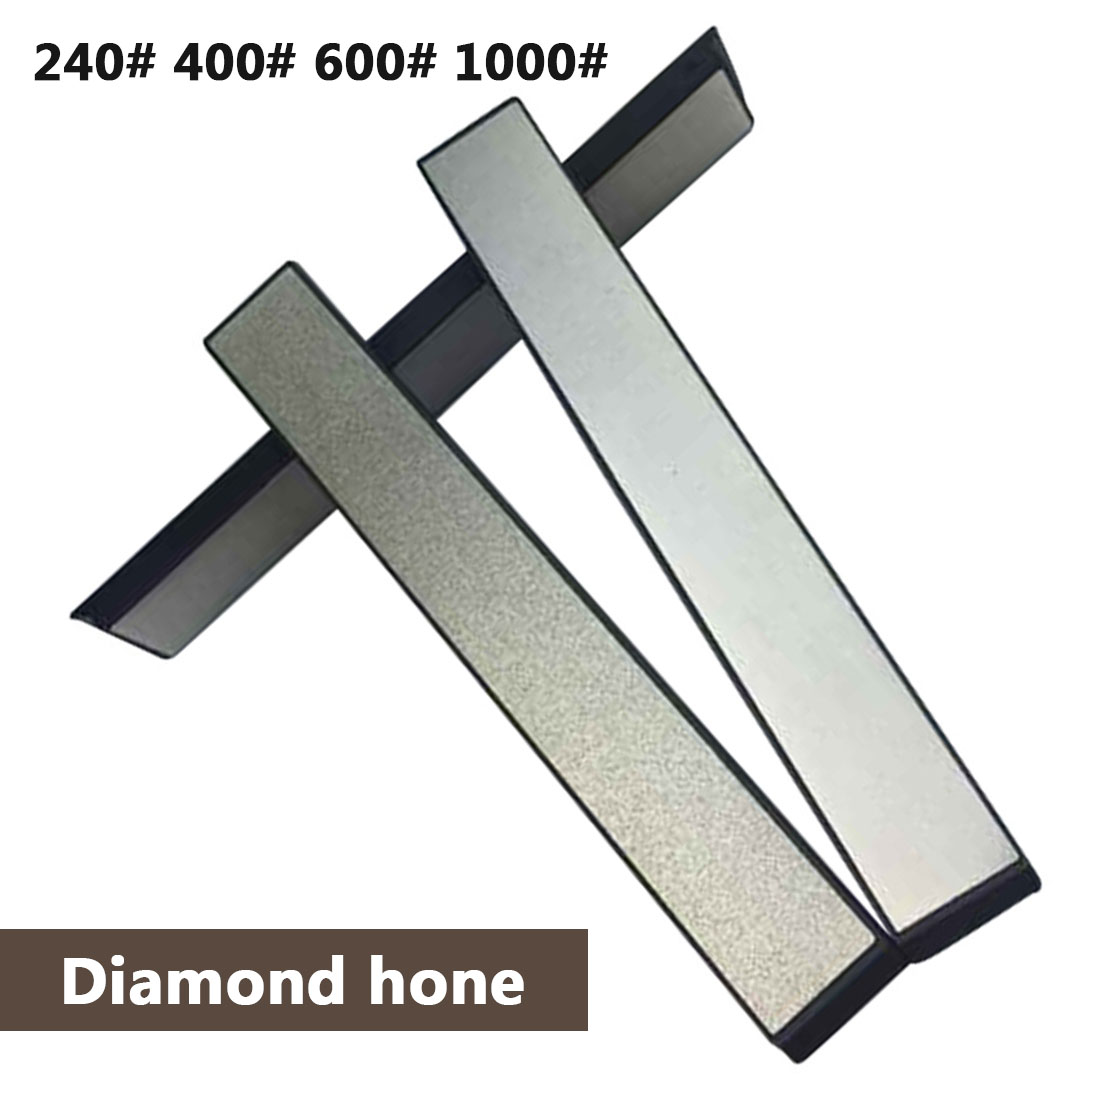 240 400 600 1000 Grit Diamond Knife Sharpener Angle Sharpening Stone Whetstone Professional Knife Sharpener Tool